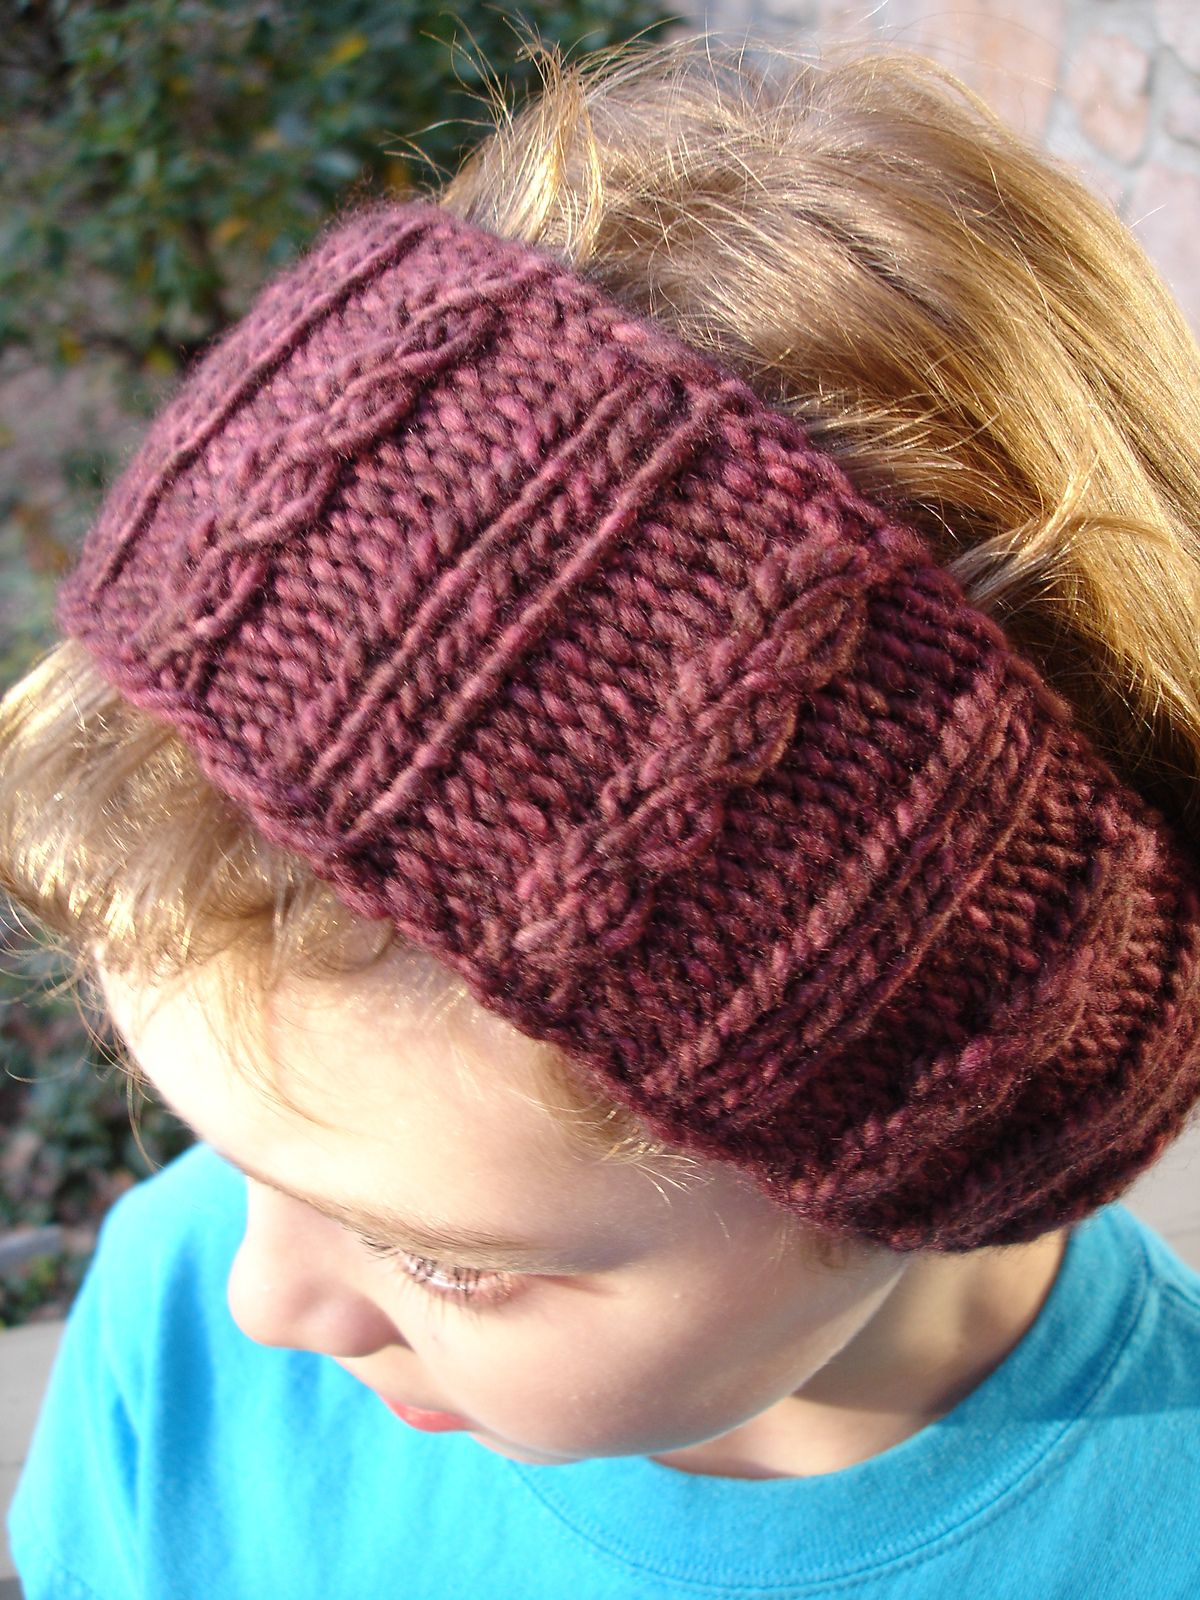 One Skein Knitting Patterns | Pinterest | Ear warmers, Knit patterns ...